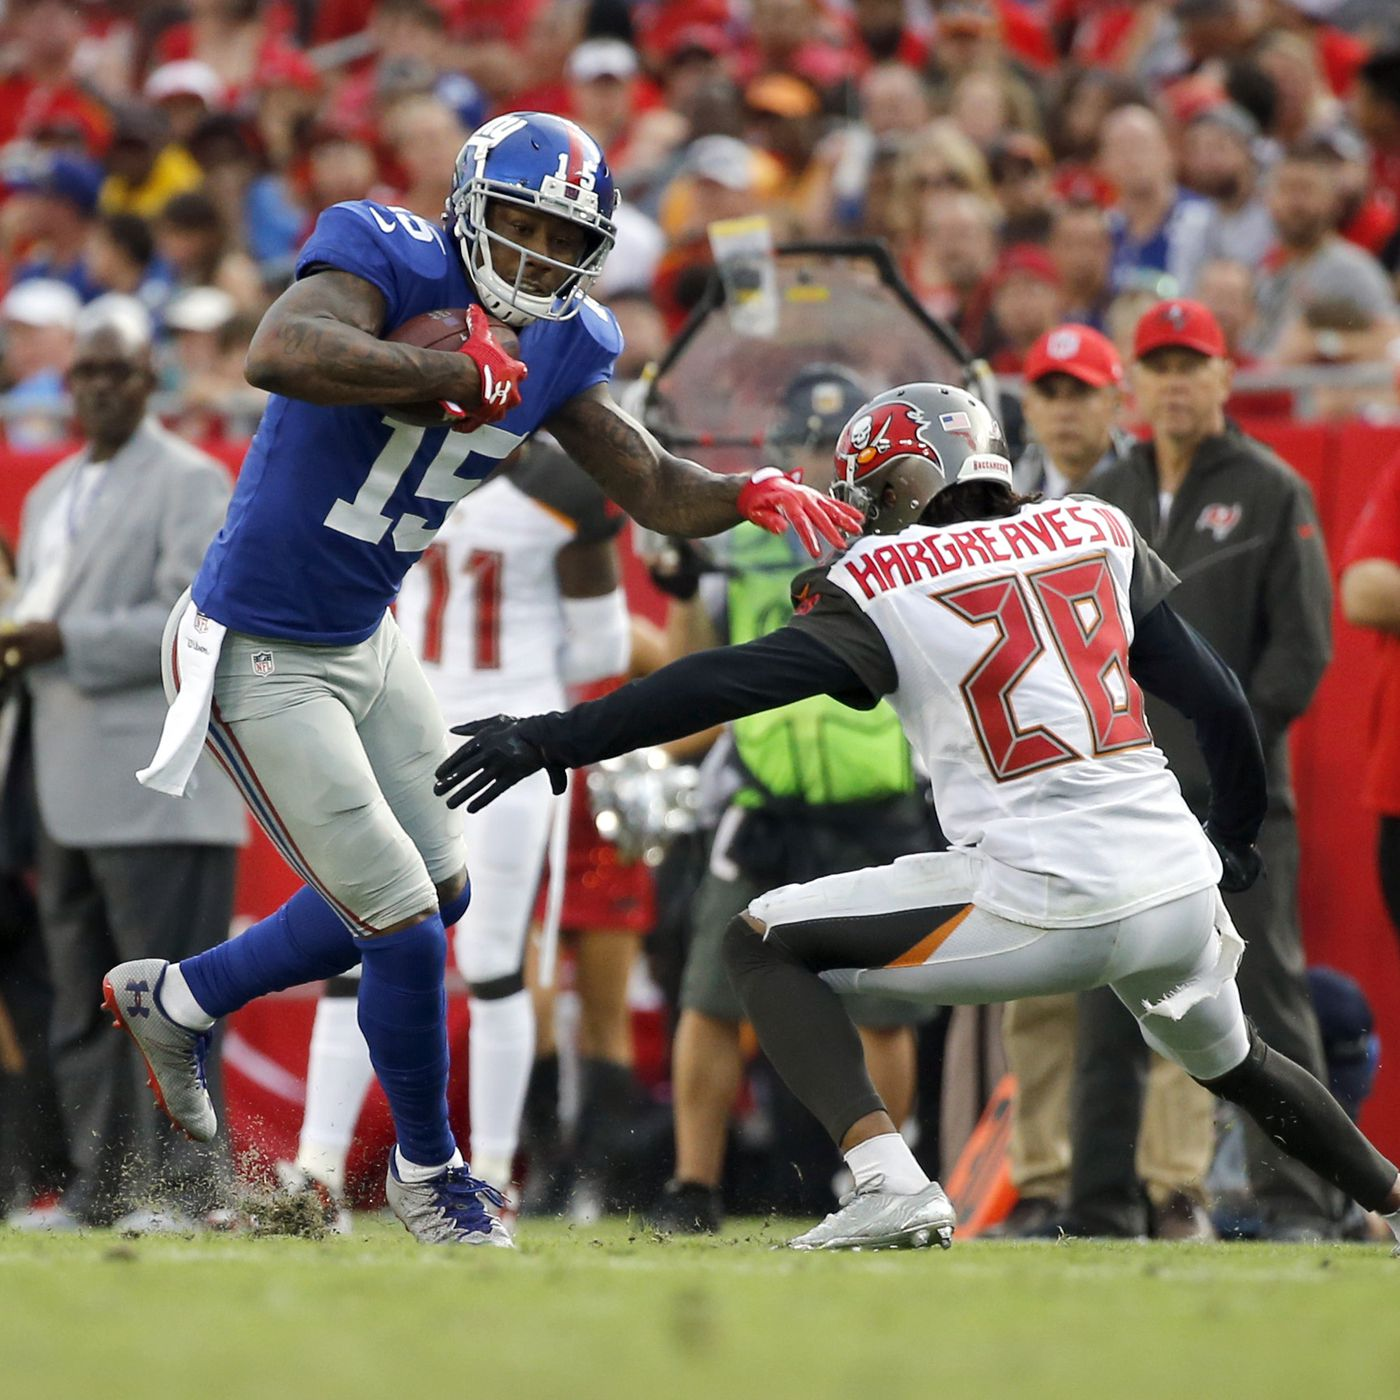 finest selection 0bd53 f4235 Trade Brandon Marshall? ESPN Says Giants Should Consider It ...